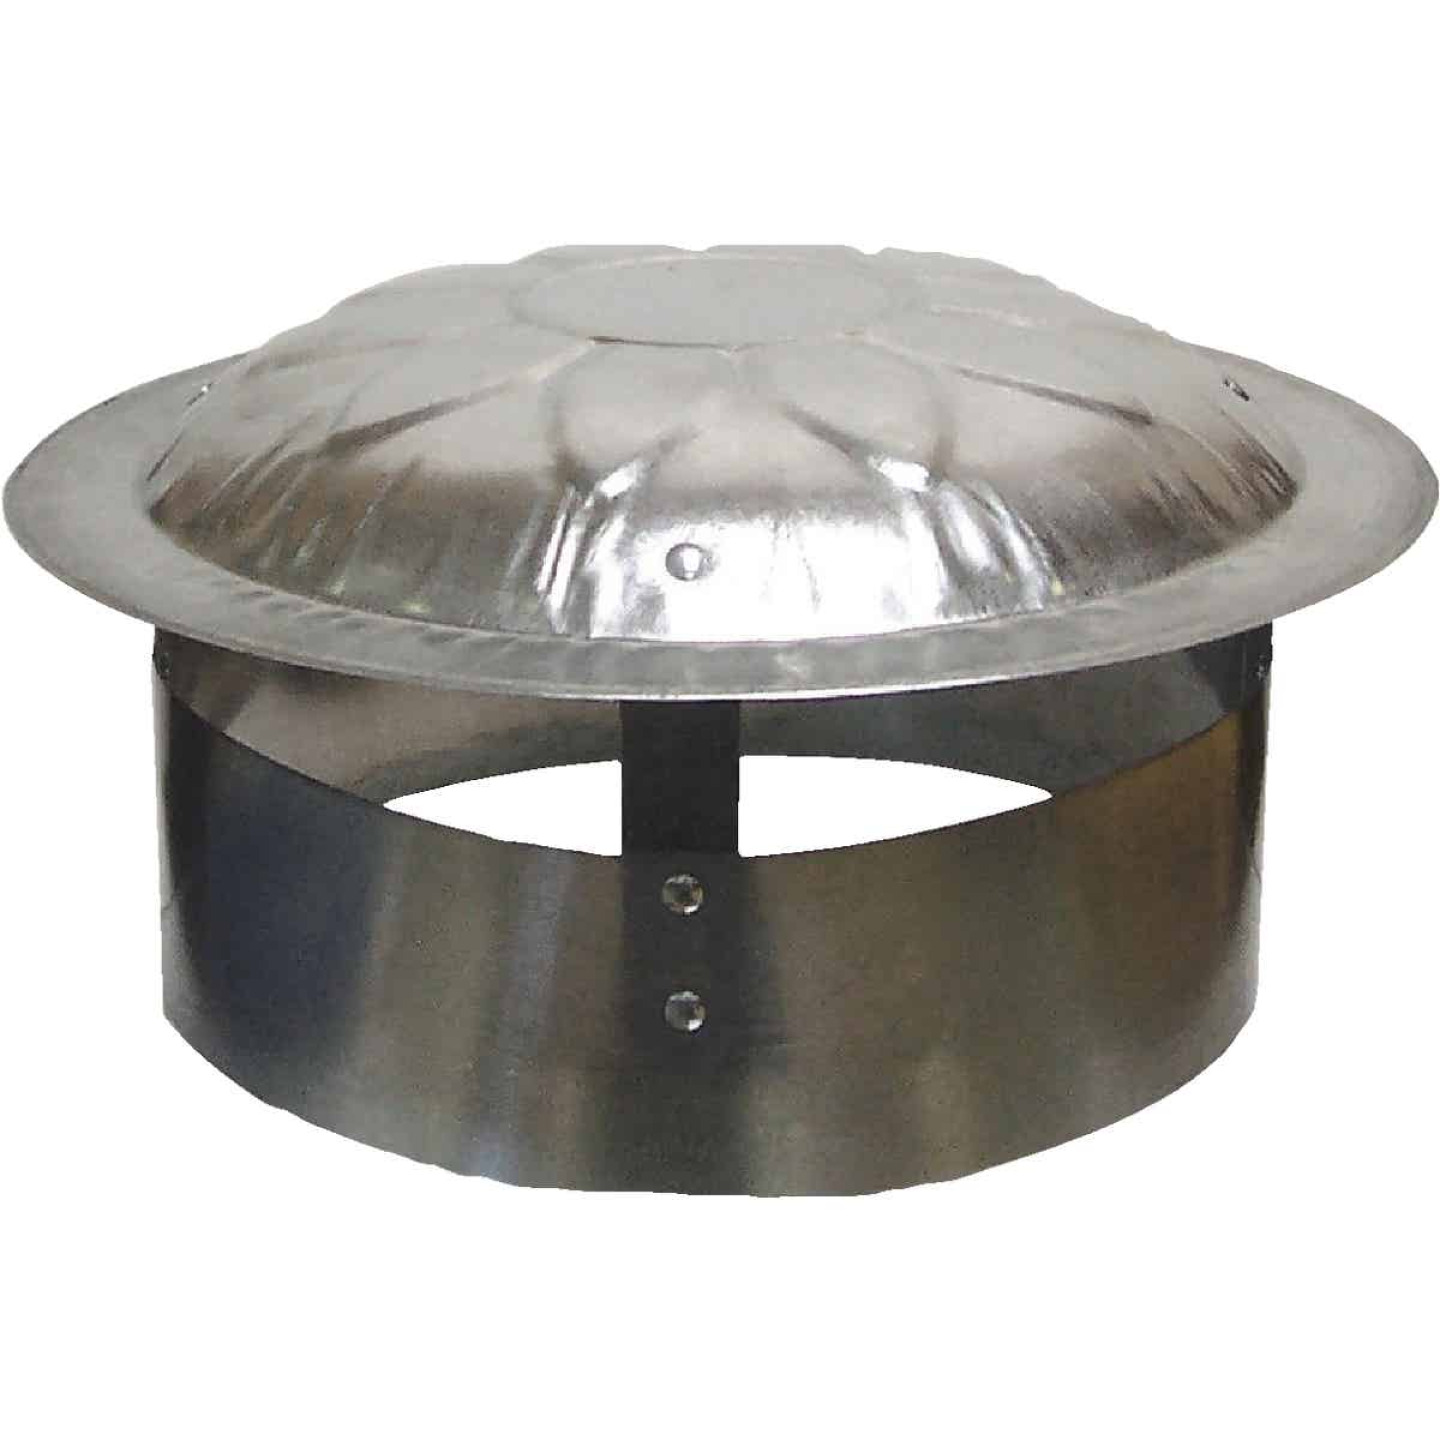 S & K Galvanized Steel 9 In. x 12 In. Vent Pipe Cap Image 1